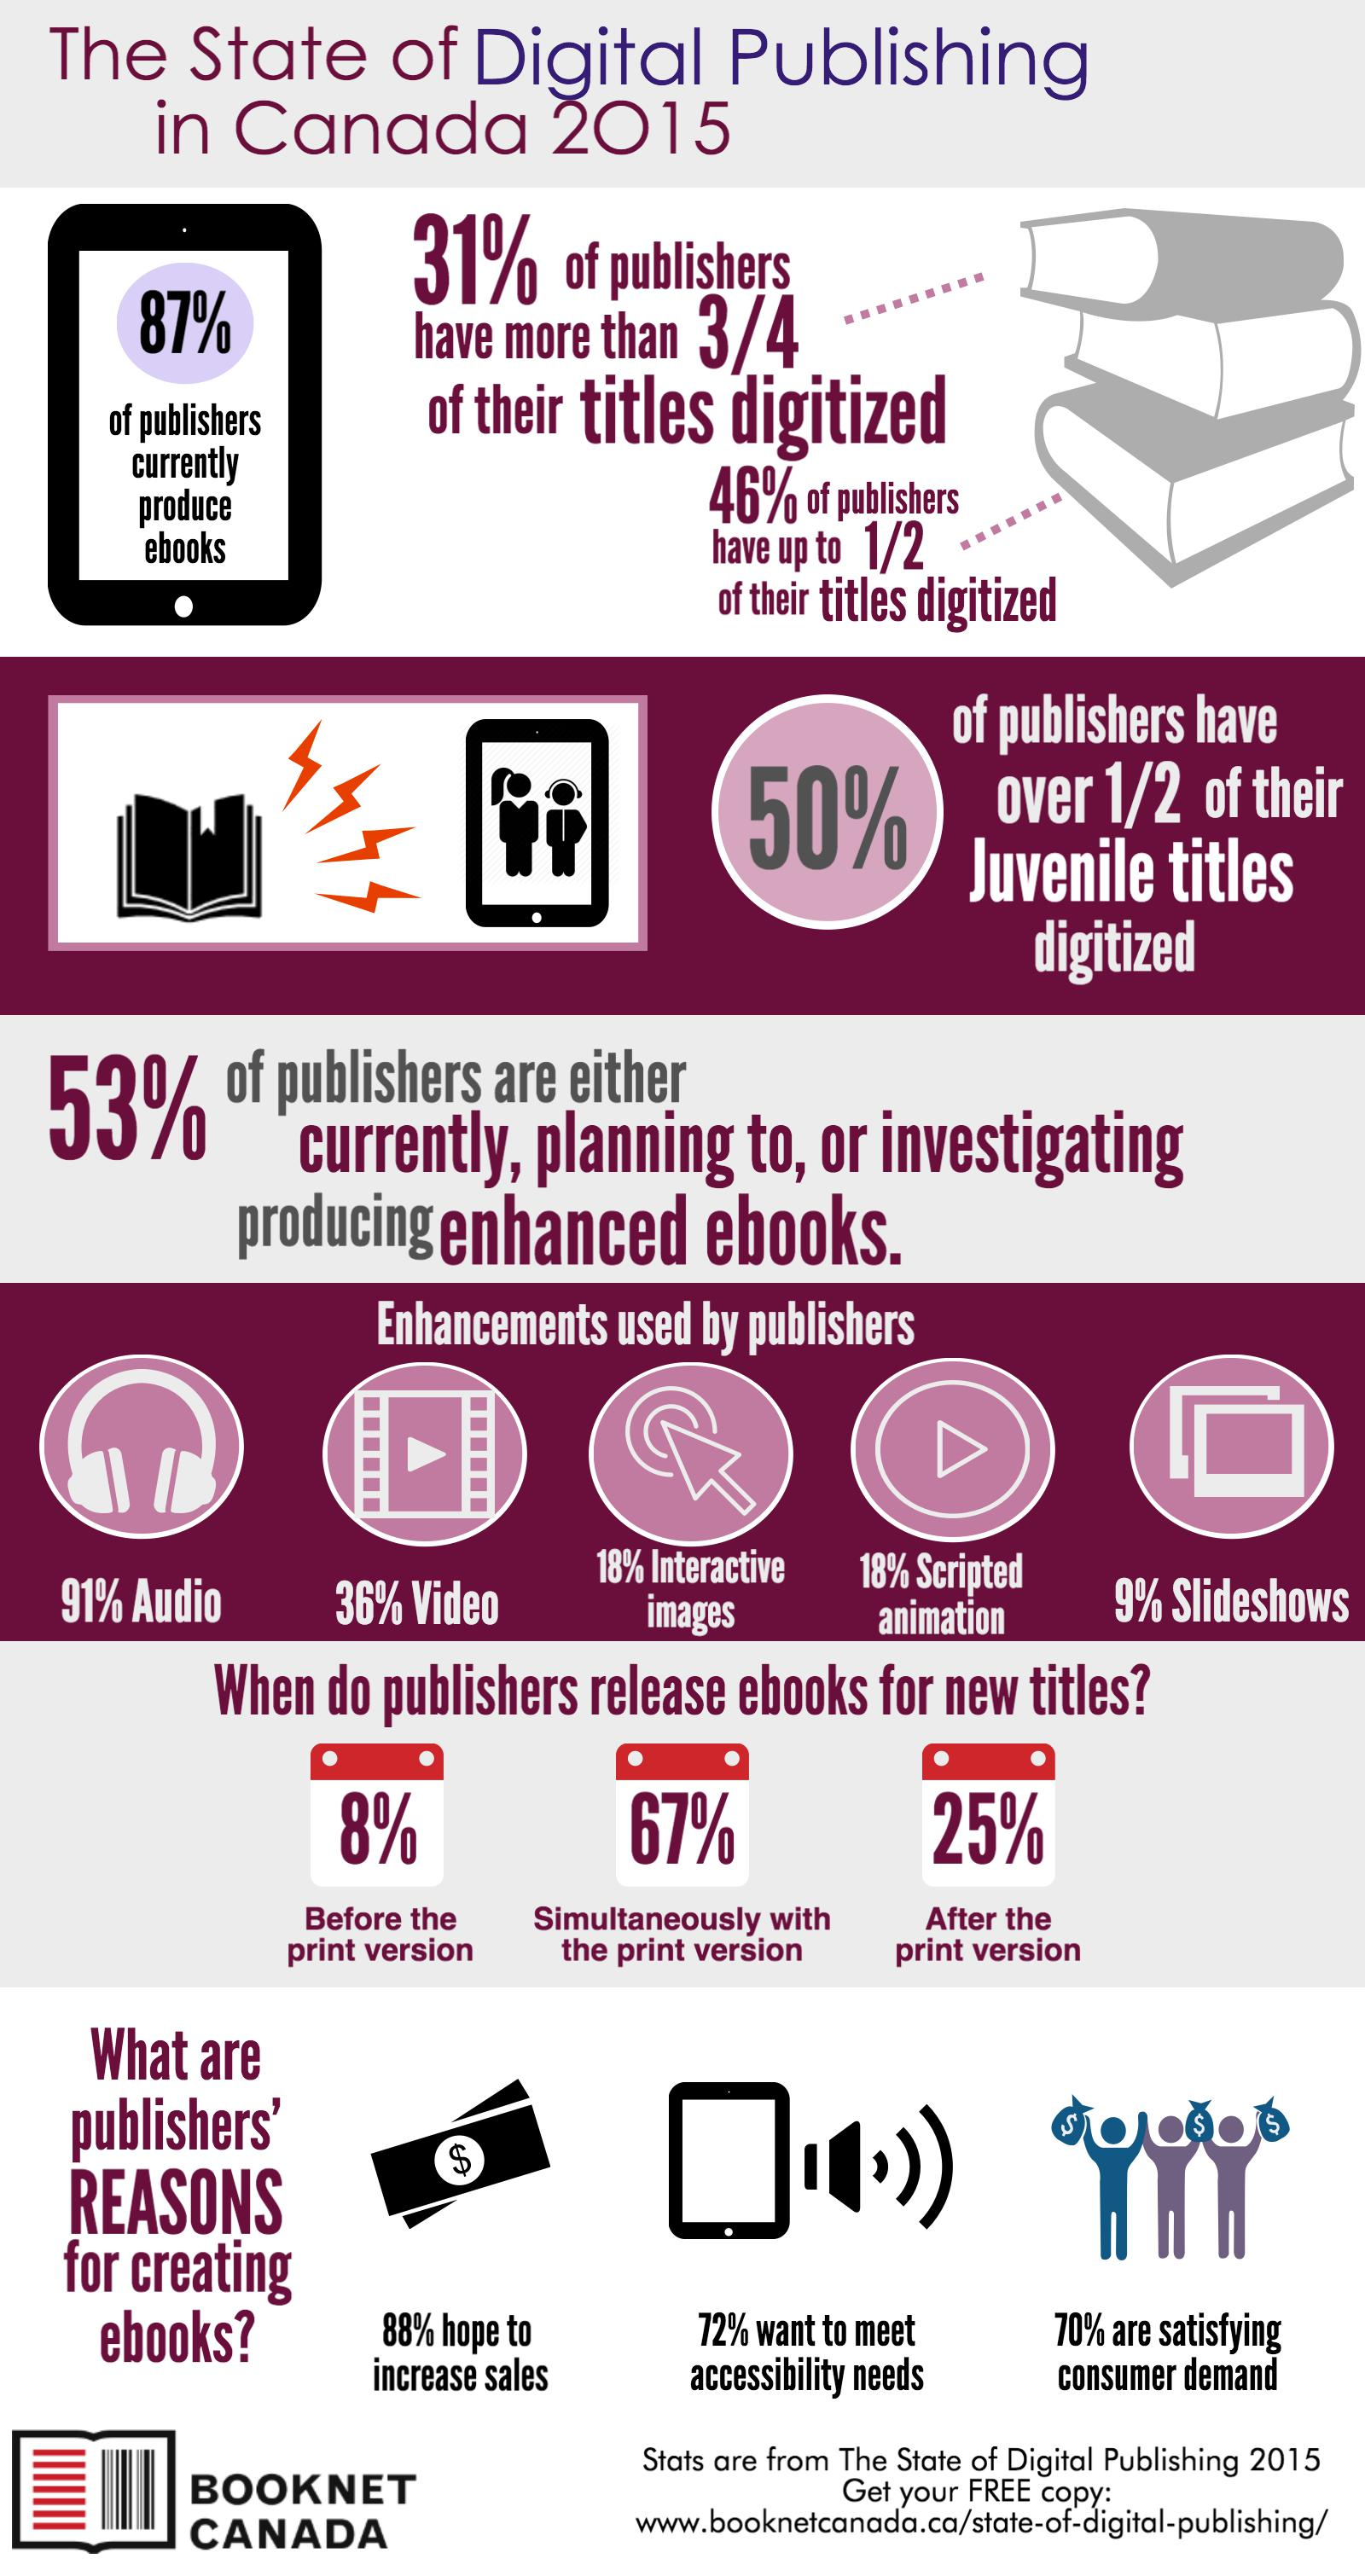 Download this infographic in beautiful  .PDF  format here!